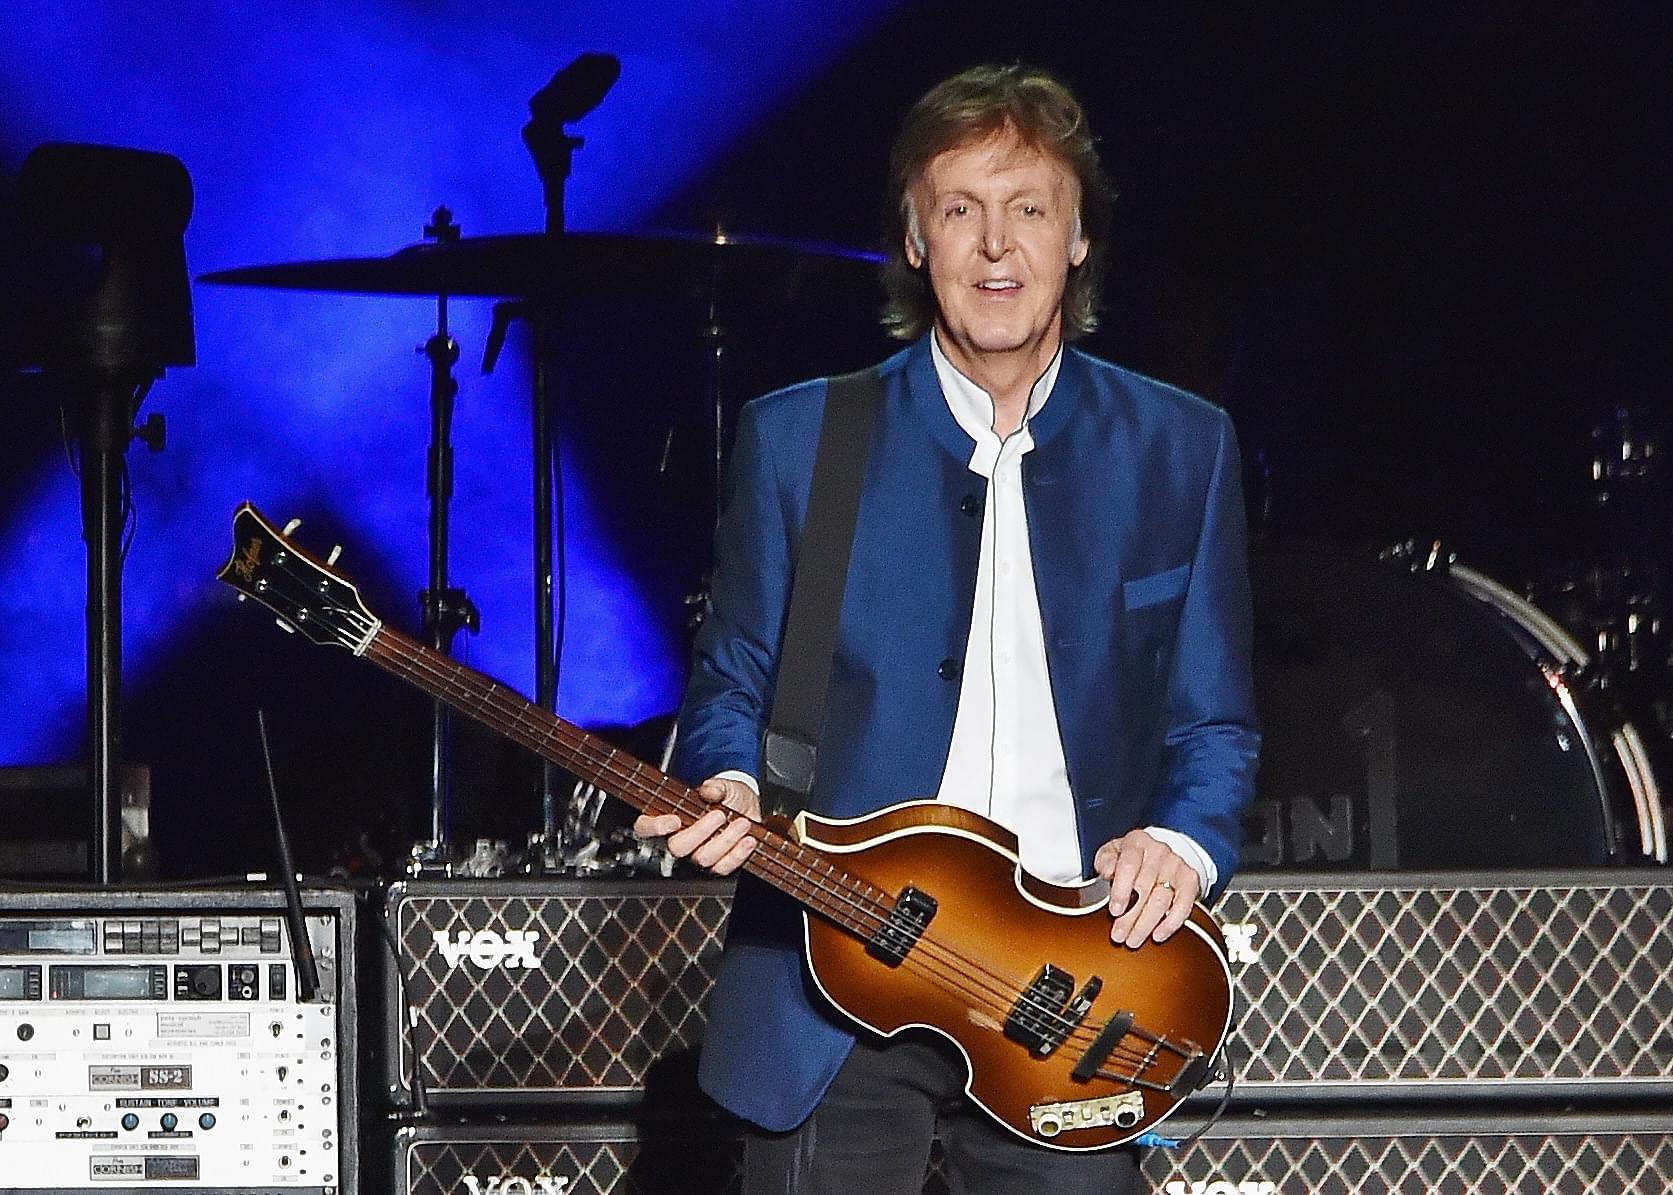 Paul McCartney partners with Netflix for new animated feature